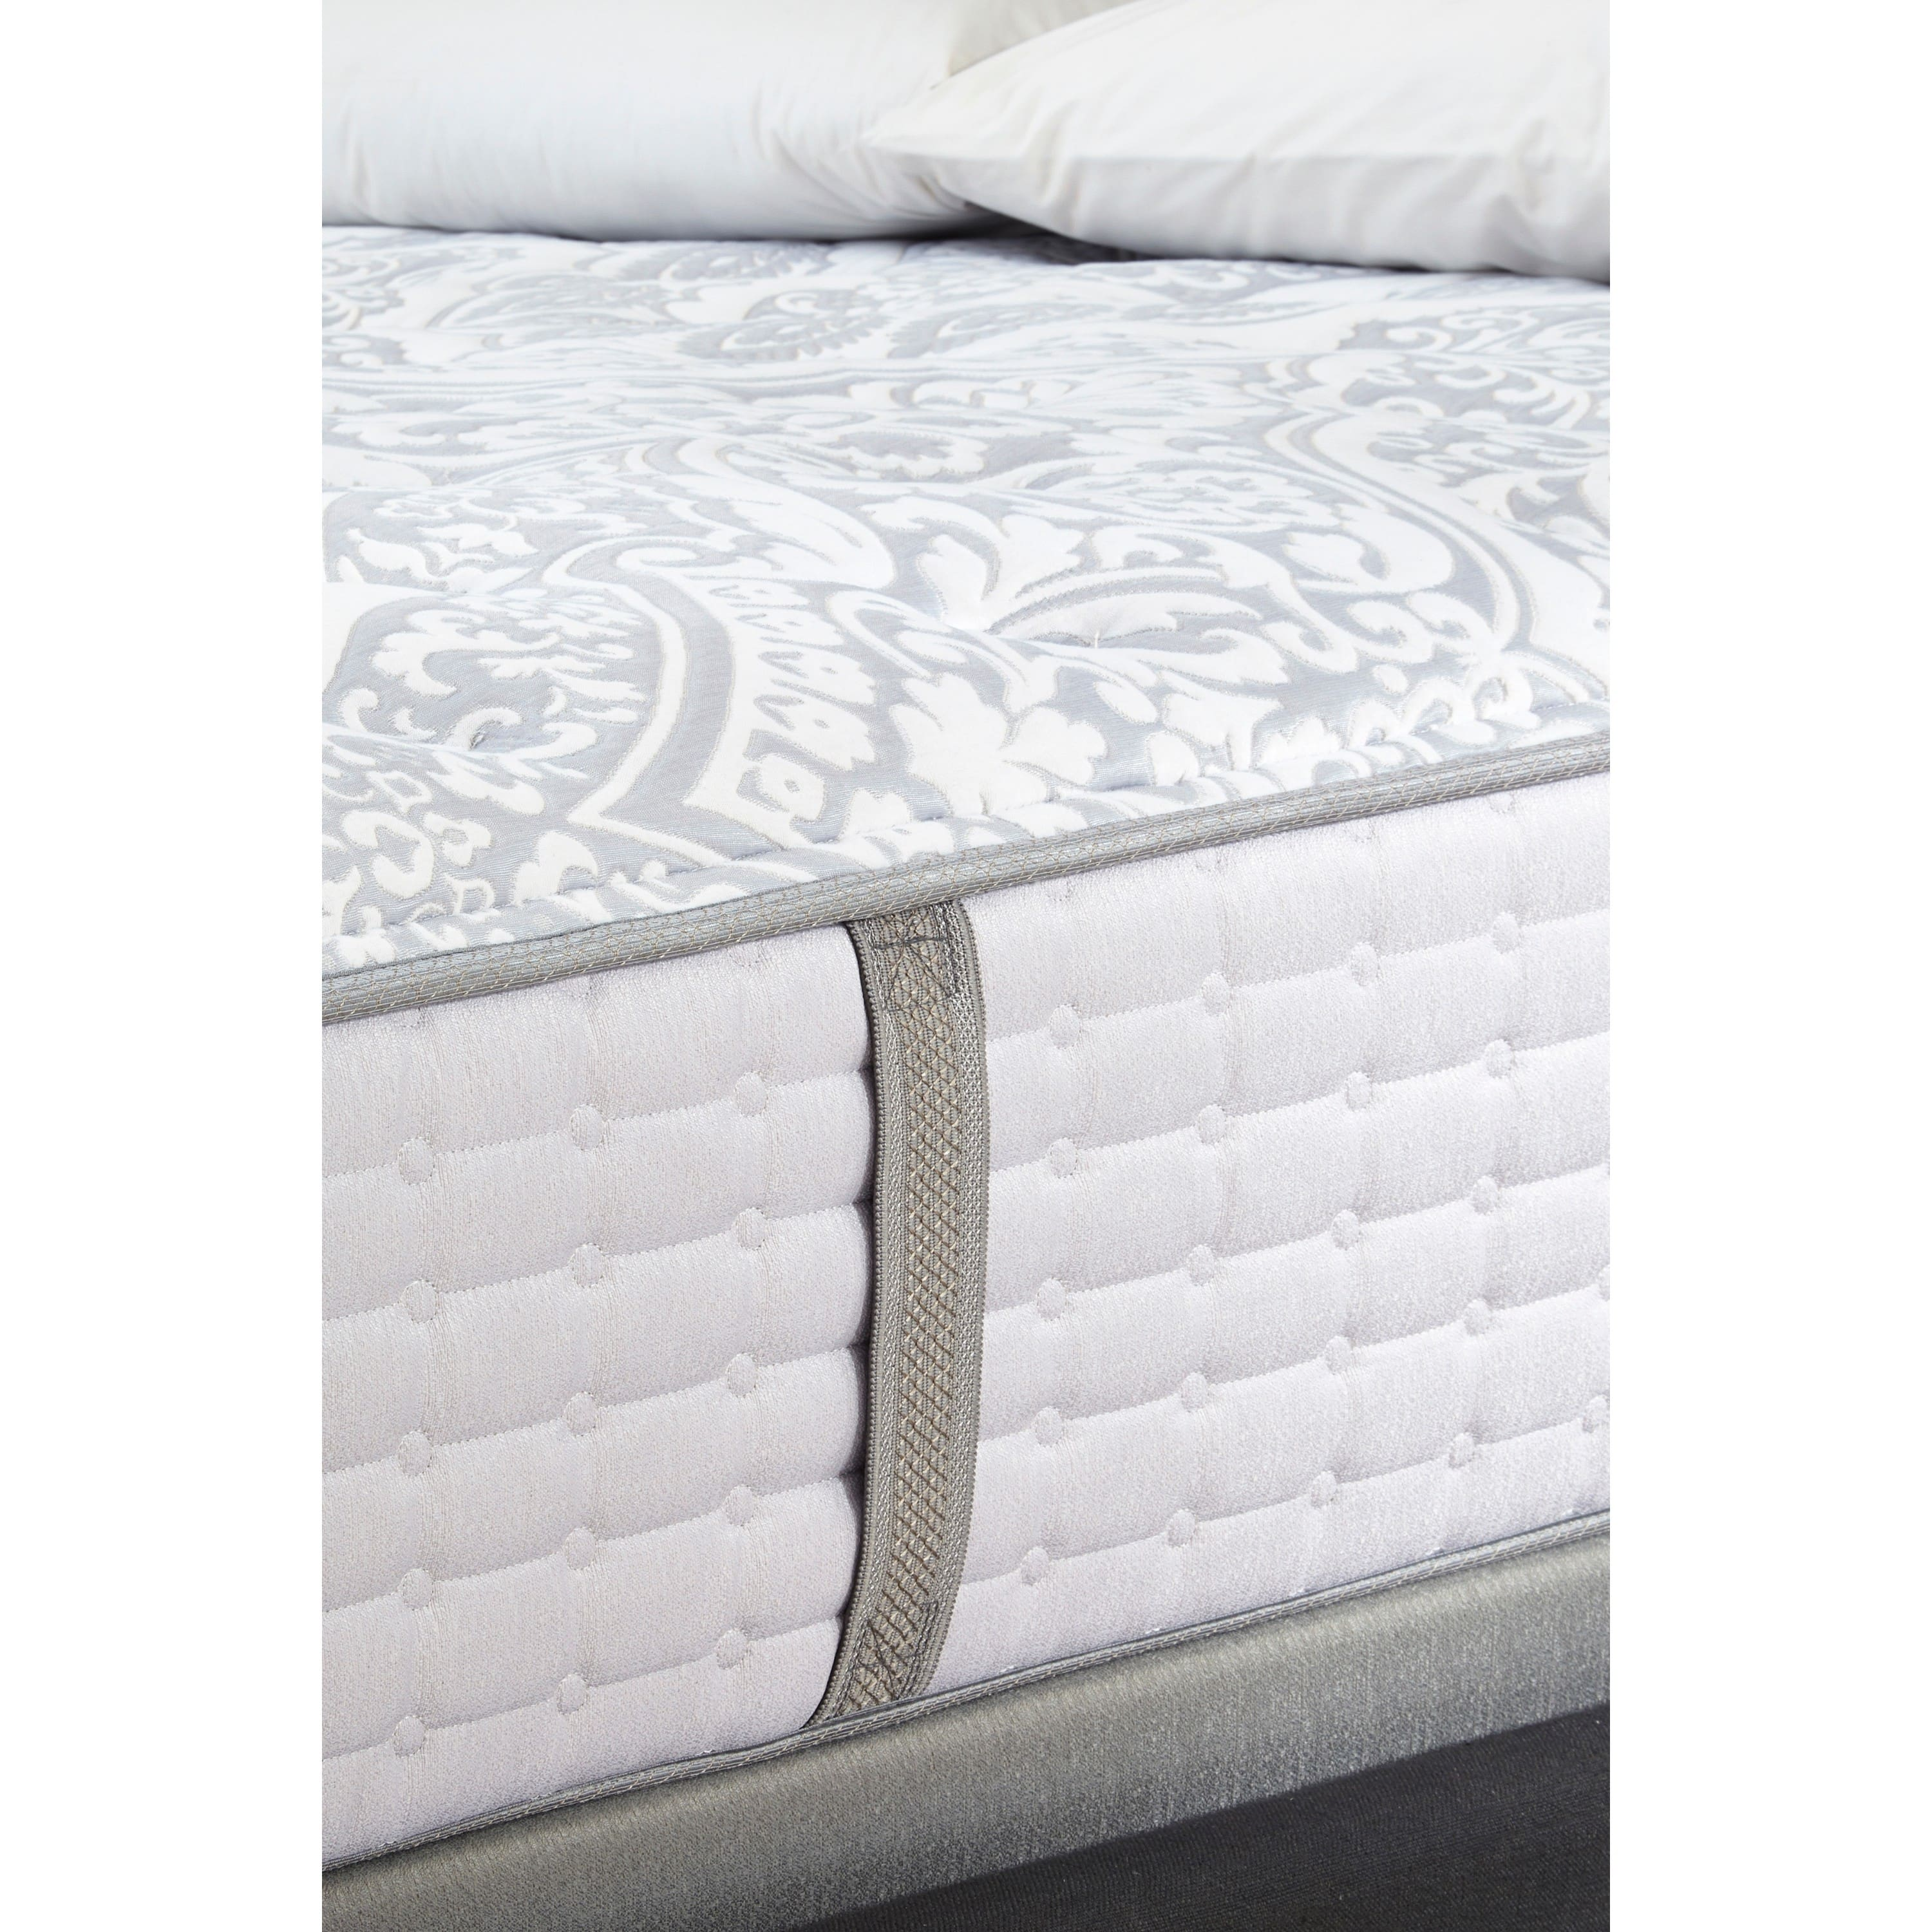 Buy Mattresses By Size Type Brands Online At Overstock